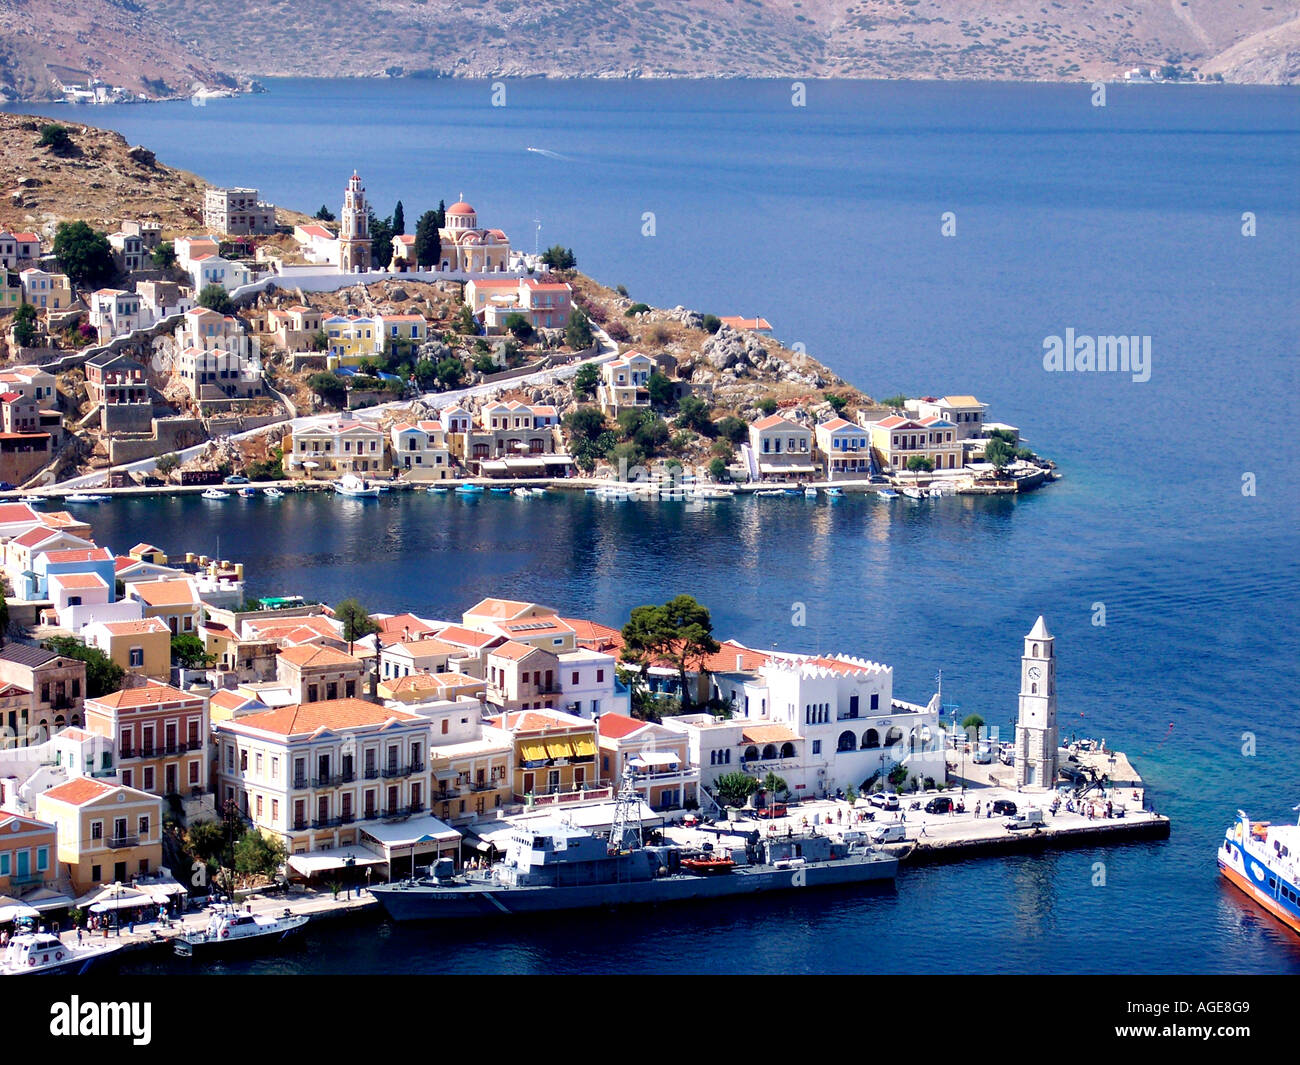 Symi Harbour Dodecanese Island Harbor Greece EU European Union Europe Stock Photo